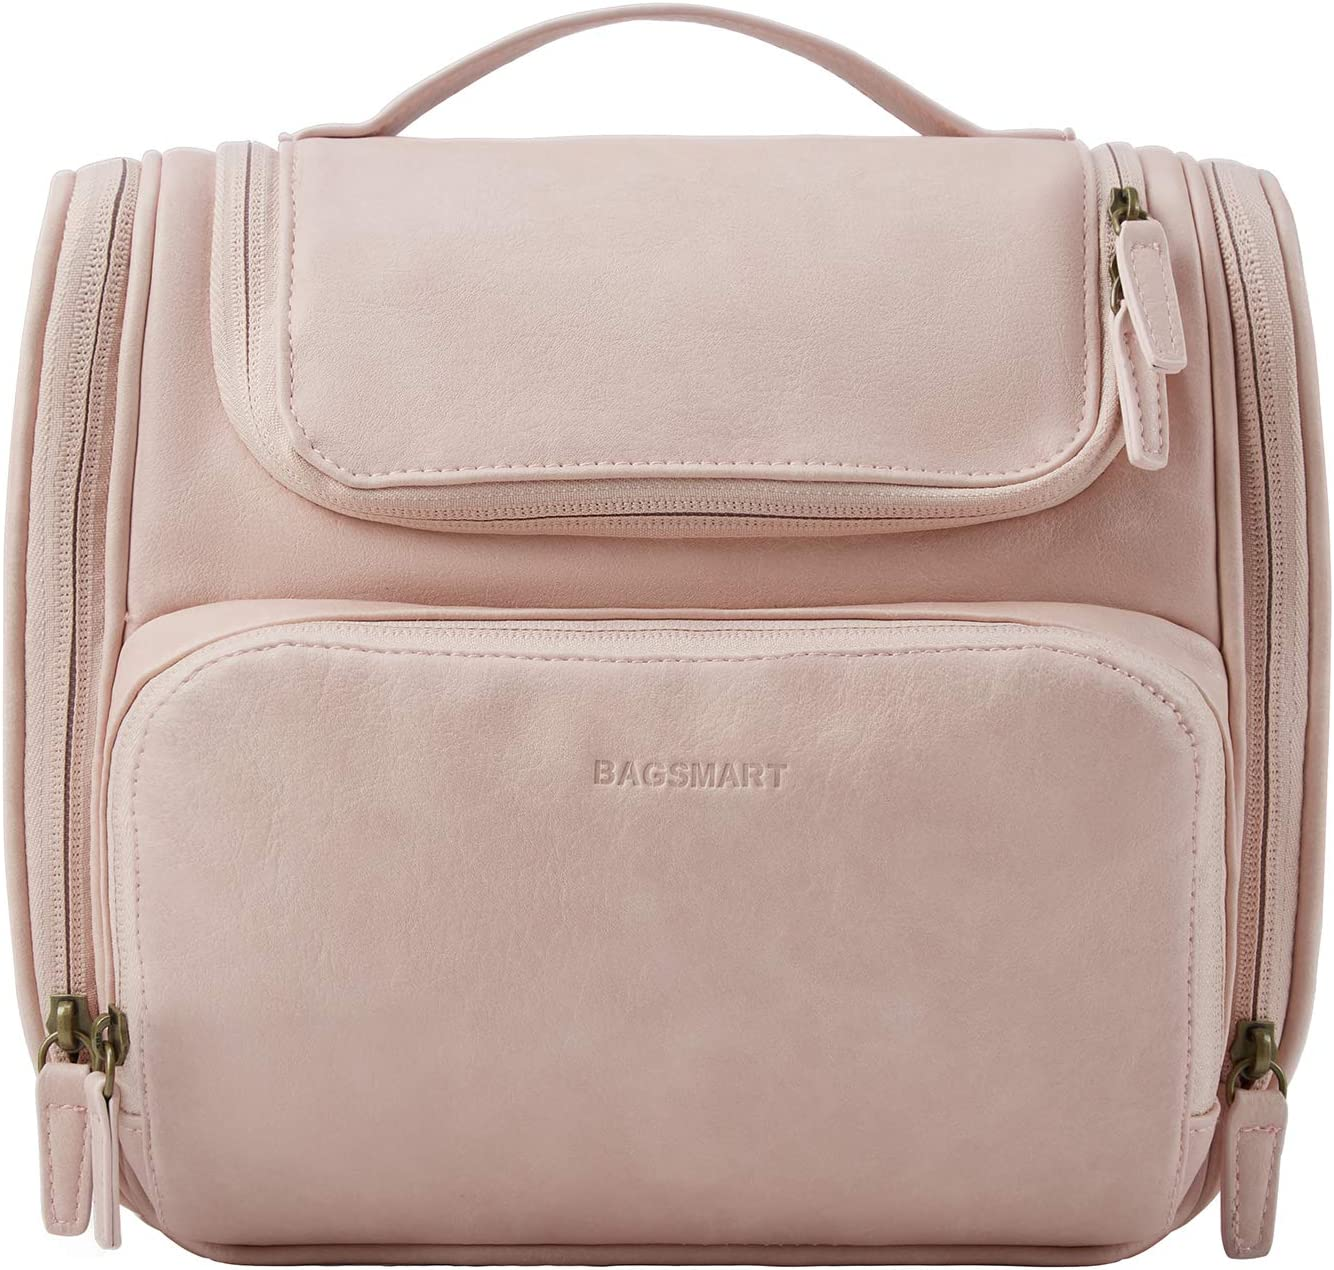 Toiletry Bag BAGSMART Travel Leather Las Vegas Mall Dopp for Kit Women 2021 autumn and winter new Ha with